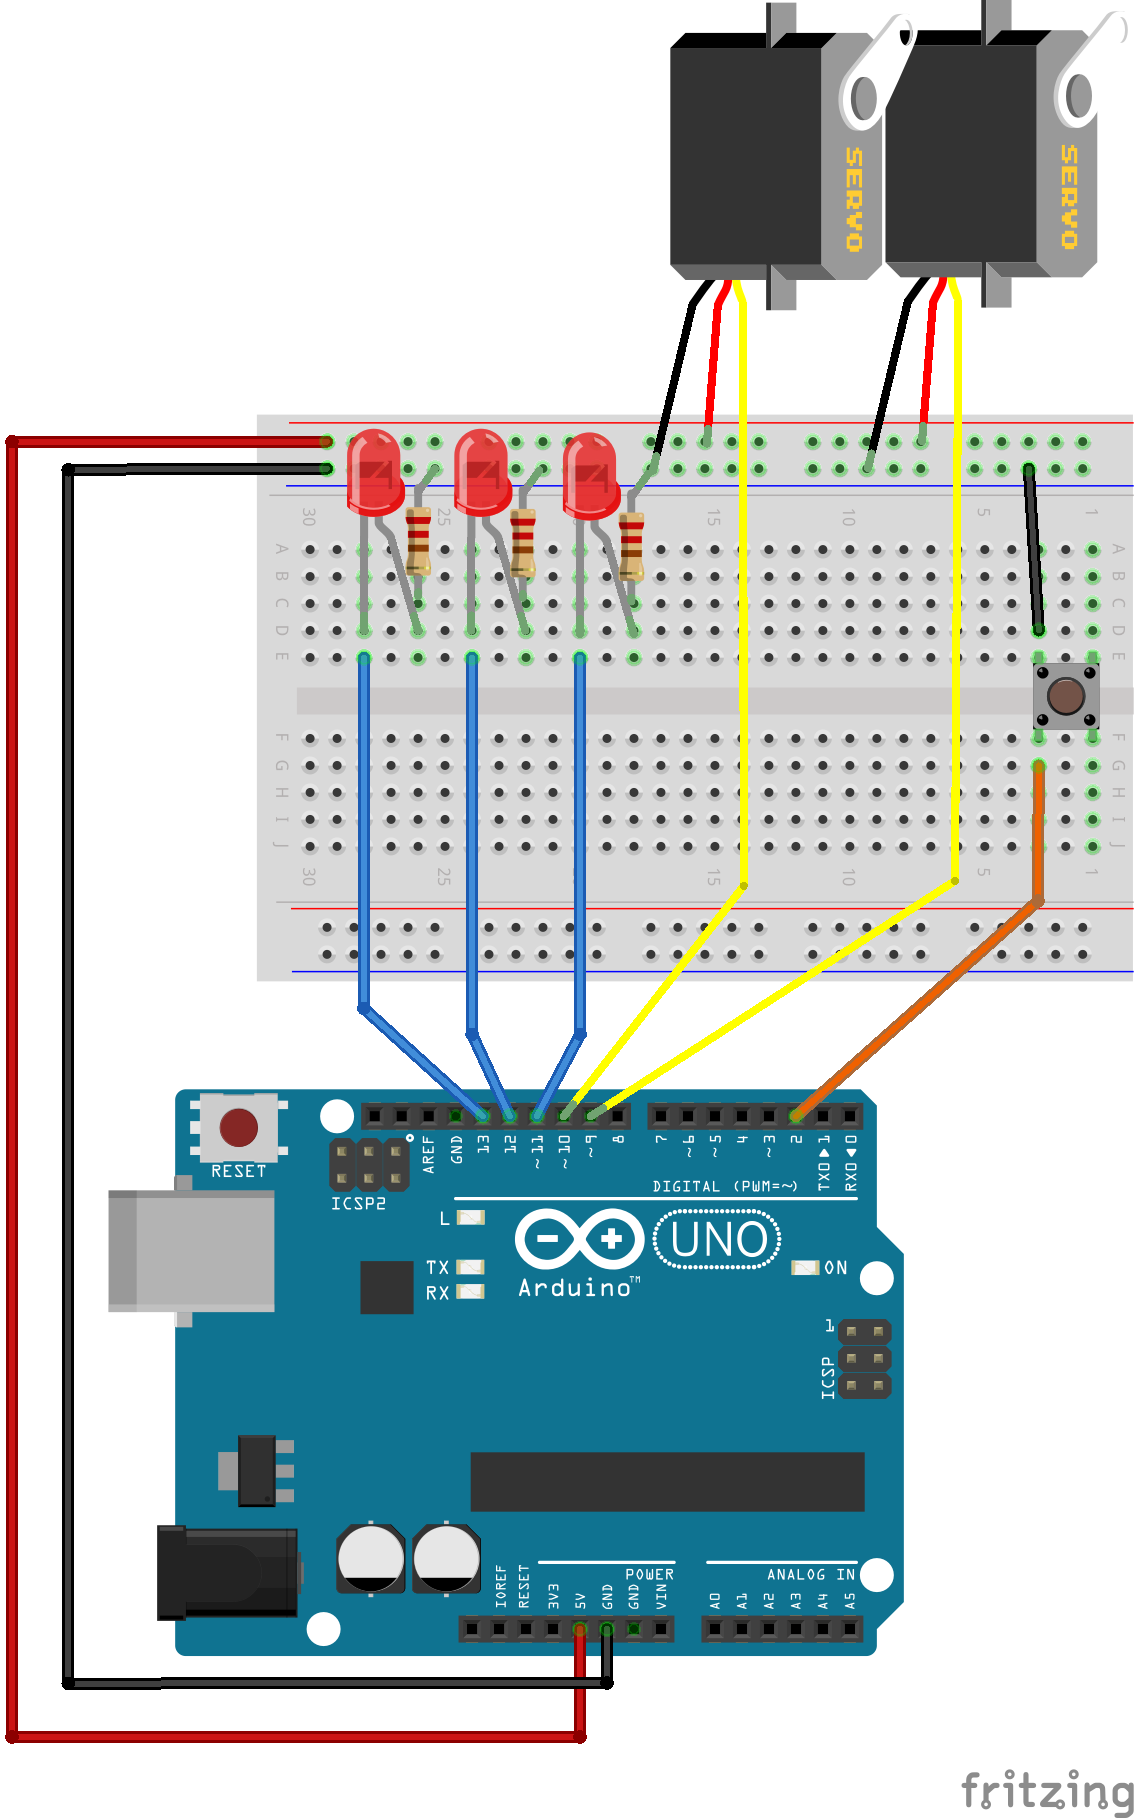 Tutorial 4: How to use Arduino mode in mBlock - YouTube